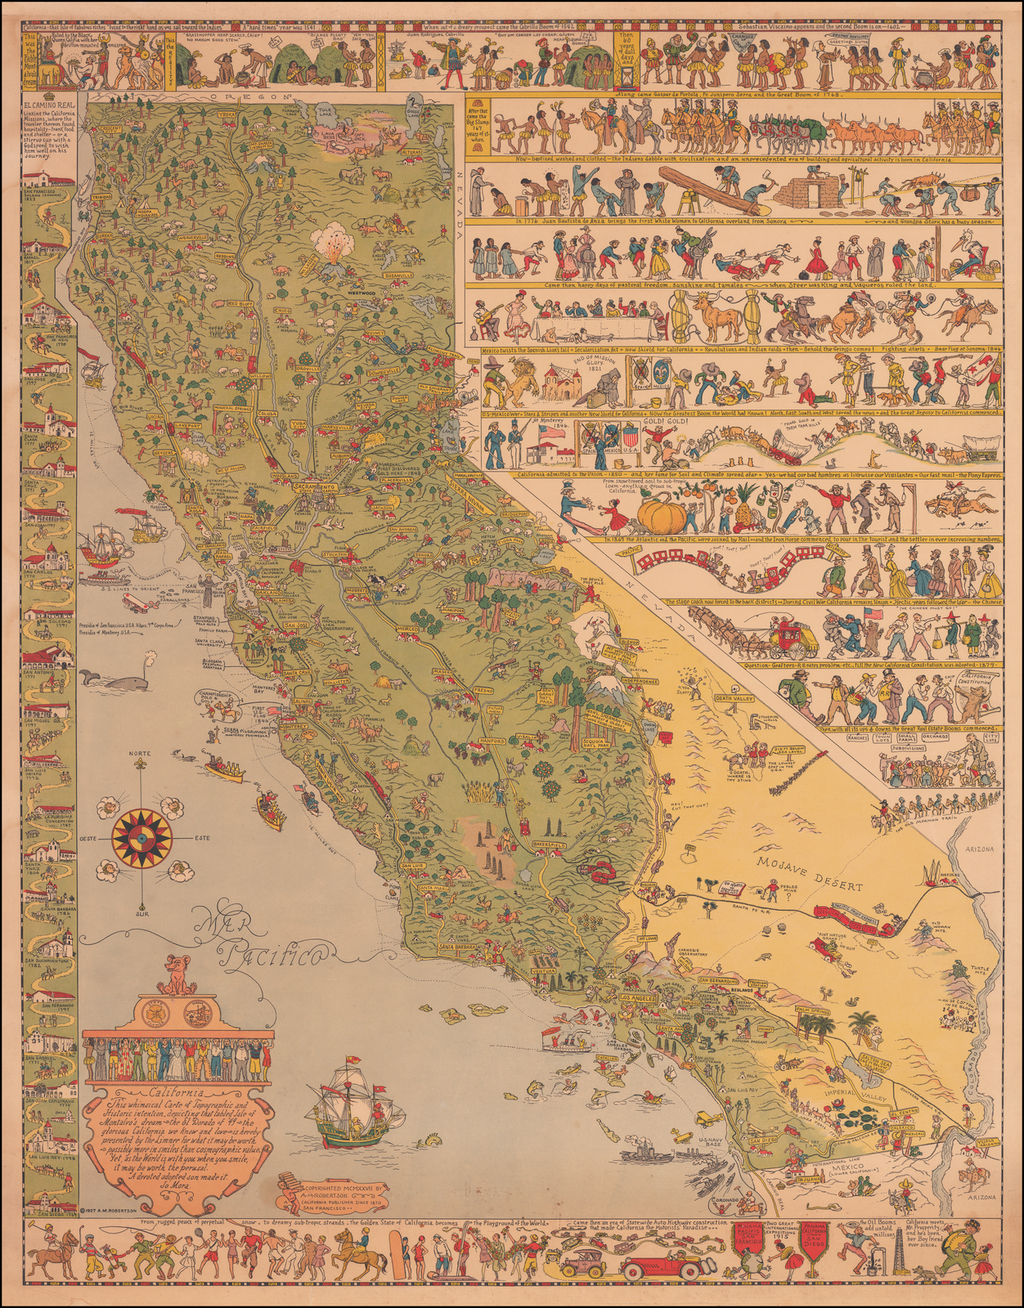 California. This whimsical Carte of Topographic and Historic intention, depicting that fabled Isle of Montalvo's dream ~ the El Dorado of '49 ~ the glorious California we know and love . . .  By Jo Mora